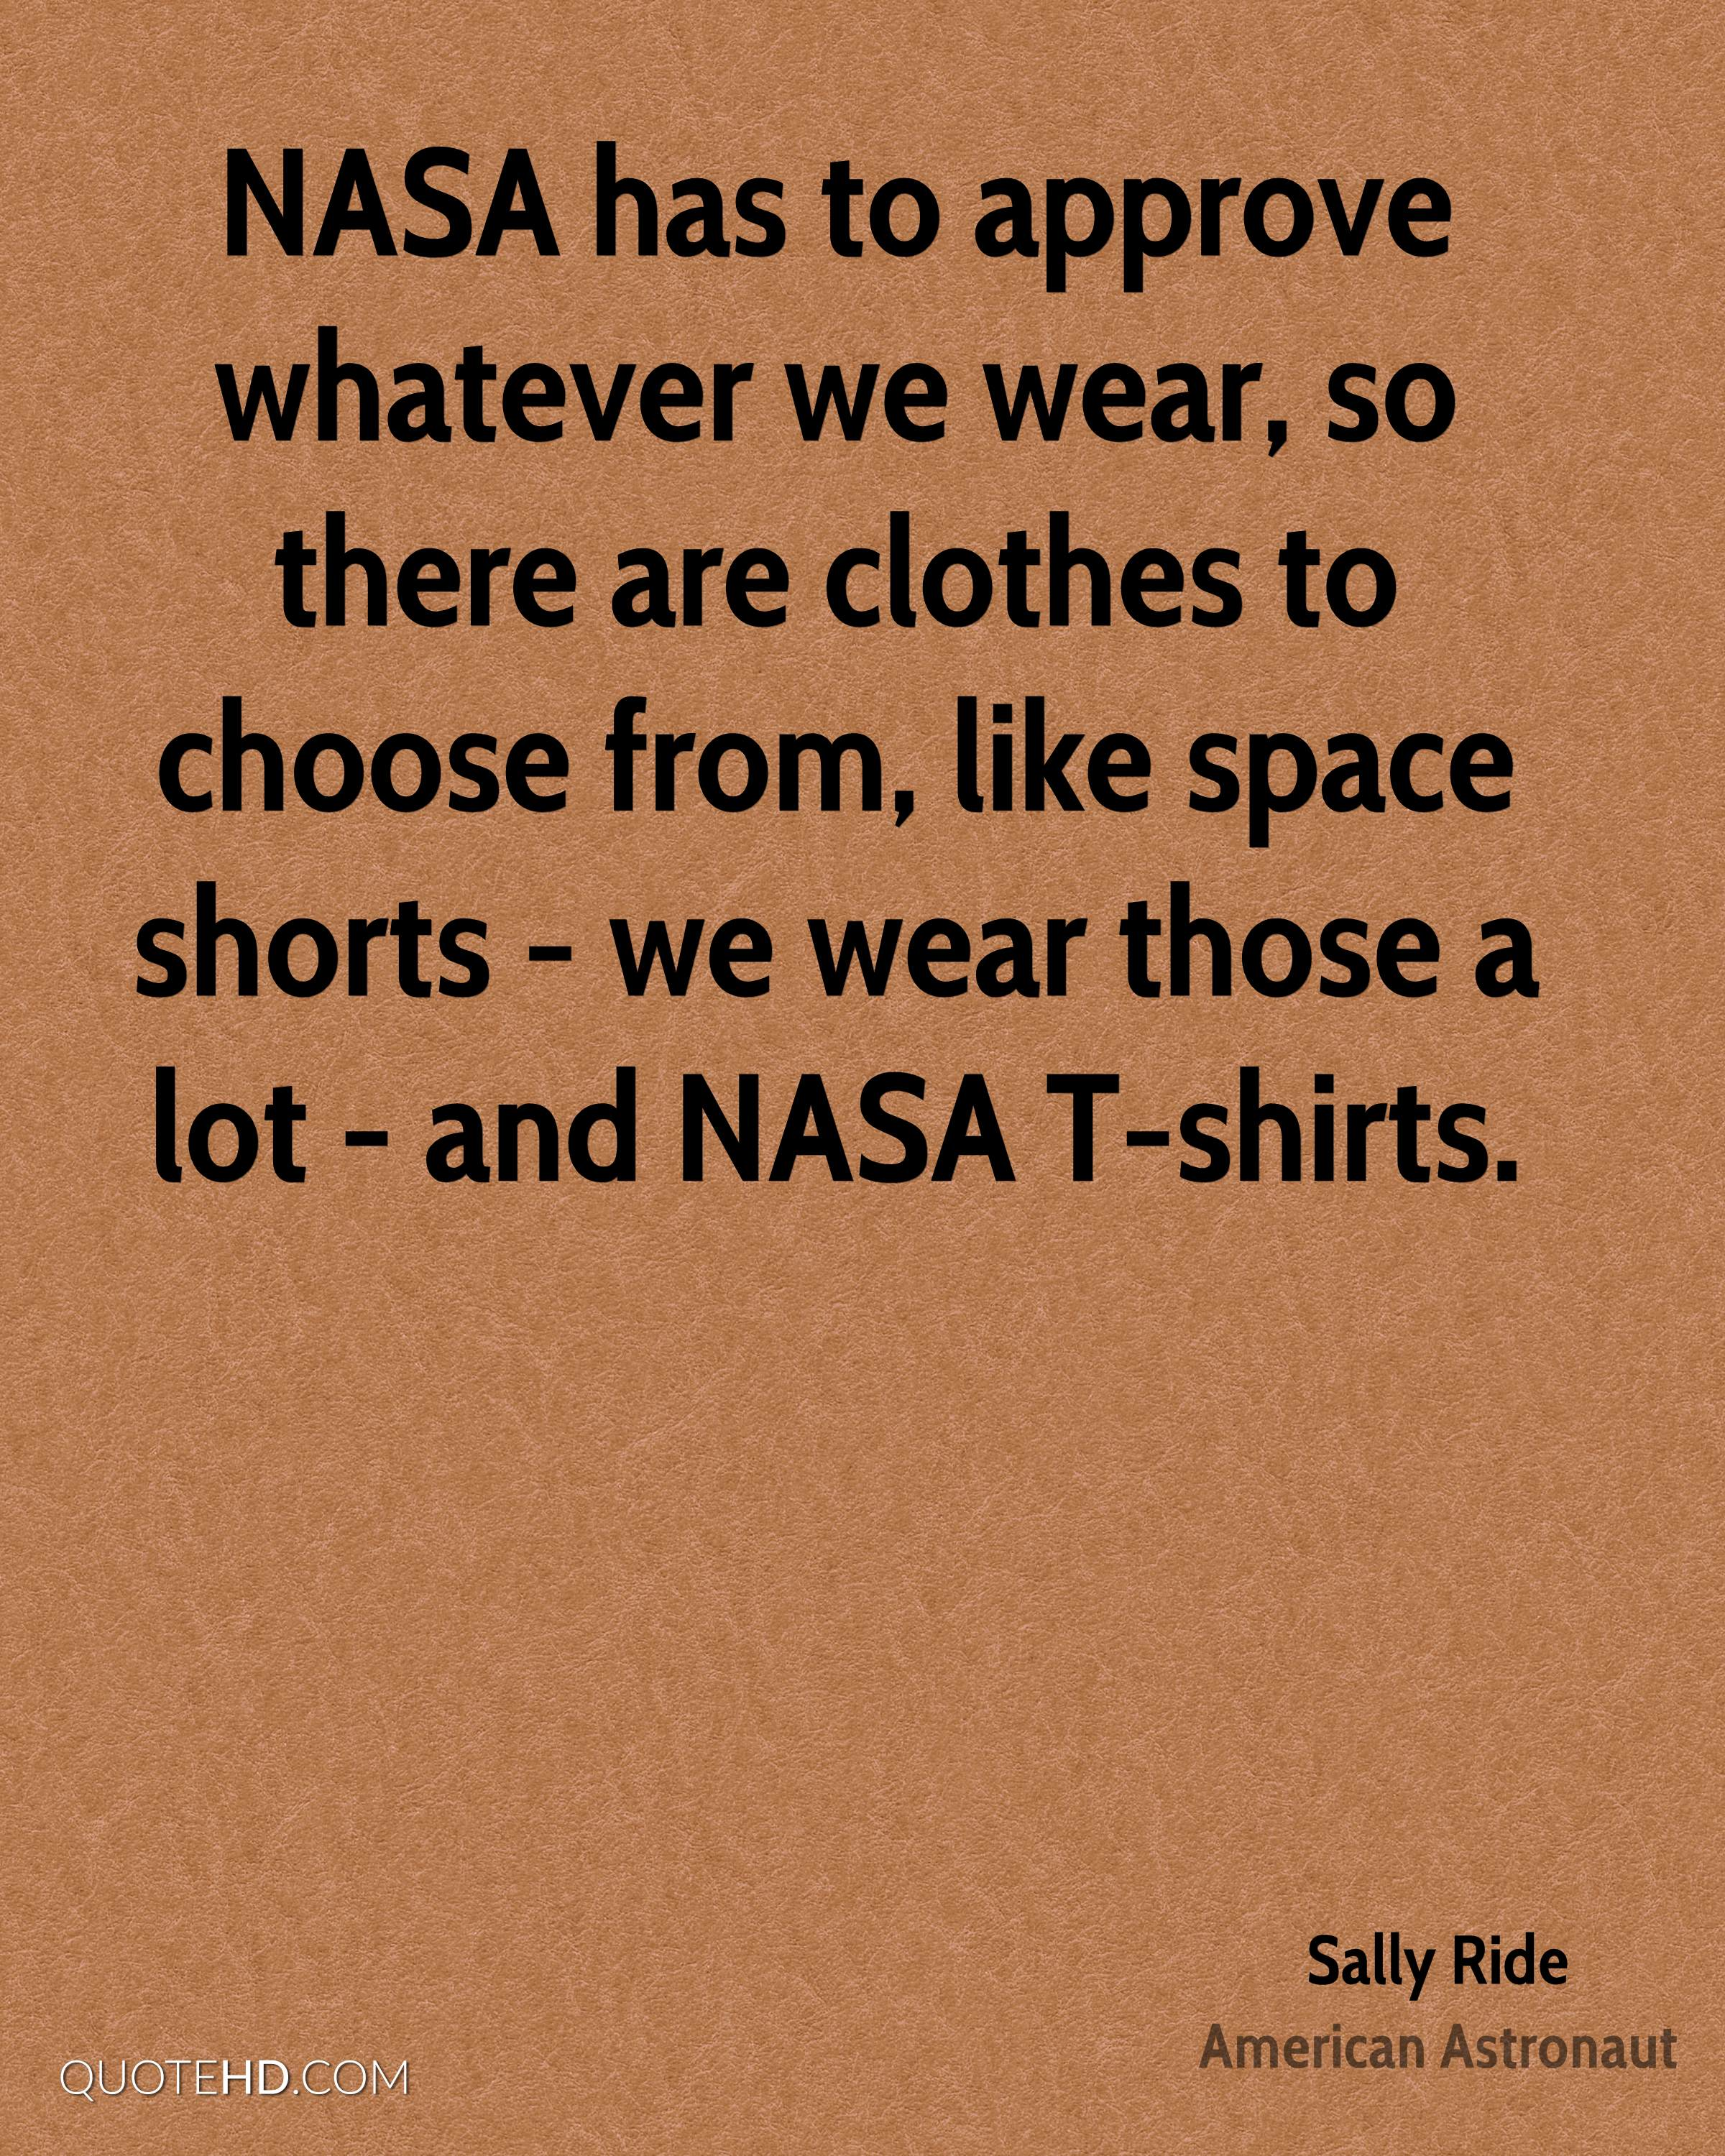 NASA has to approve whatever we wear, so there are clothes to choose from, like space shorts - we wear those a lot - and NASA T-shirts.